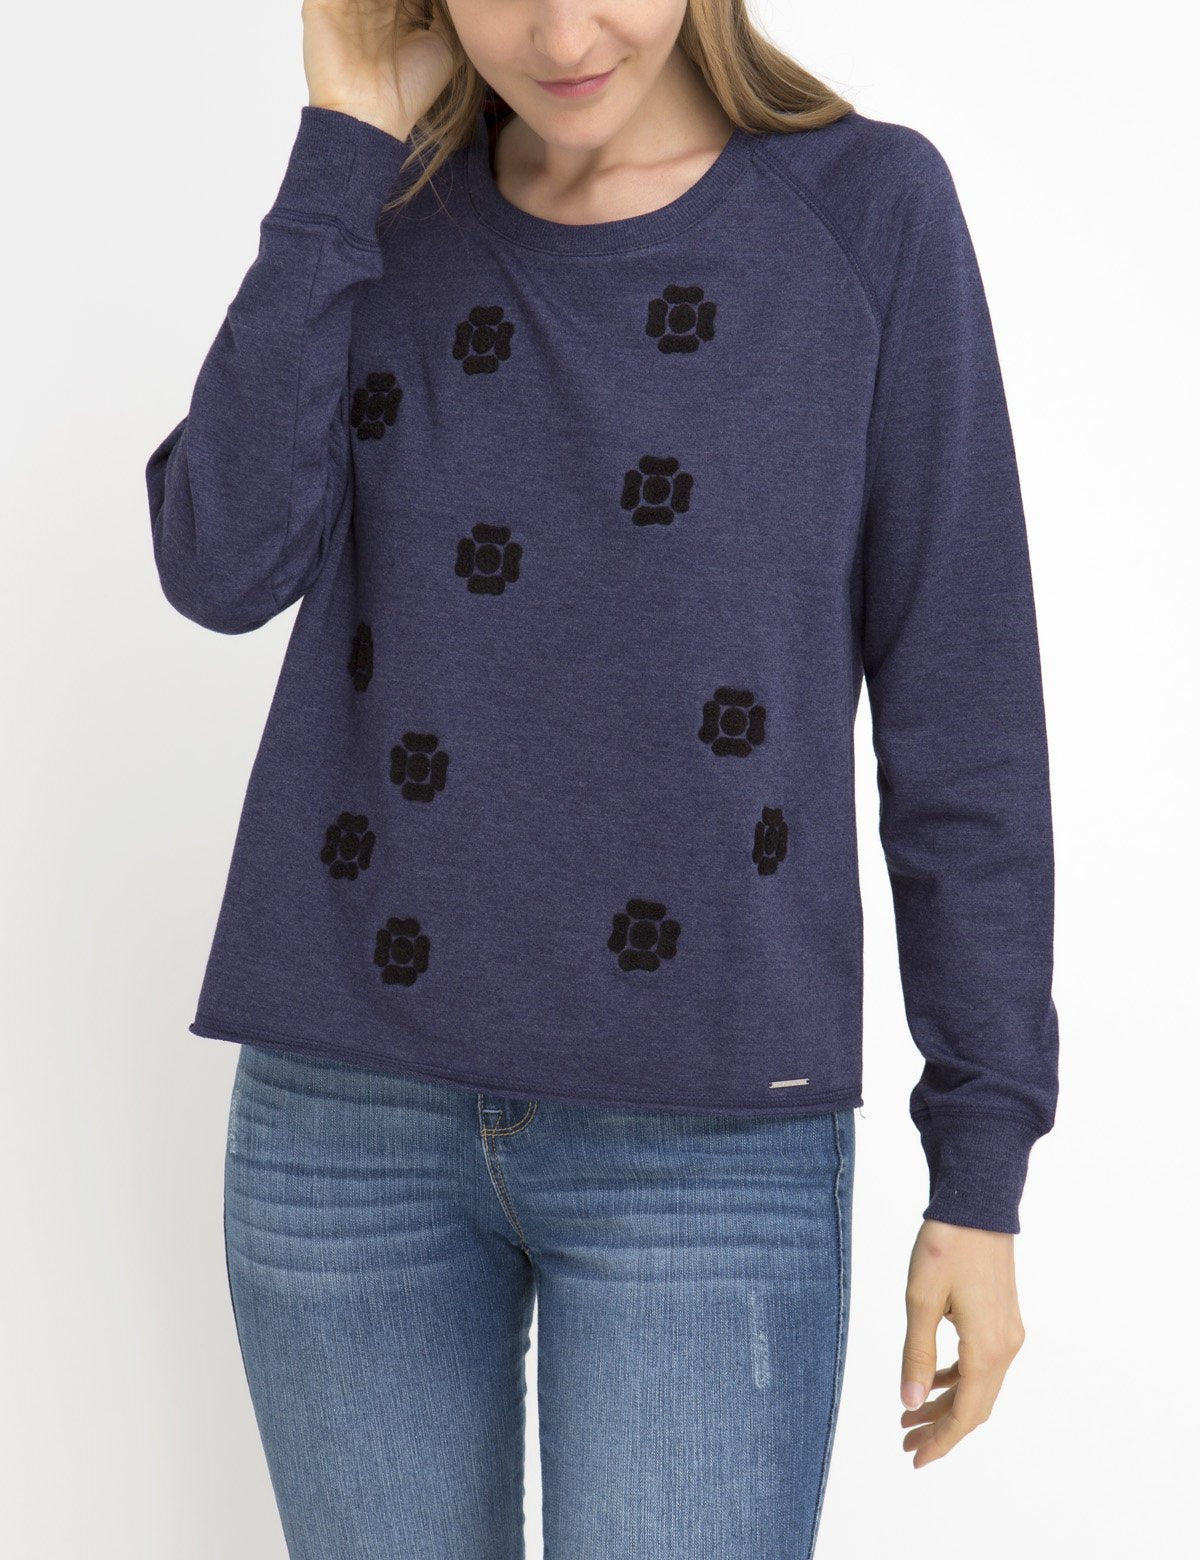 FLORAL APPLIQUE LONG SLEEVE SWEATSHIRT - U.S. Polo Assn.